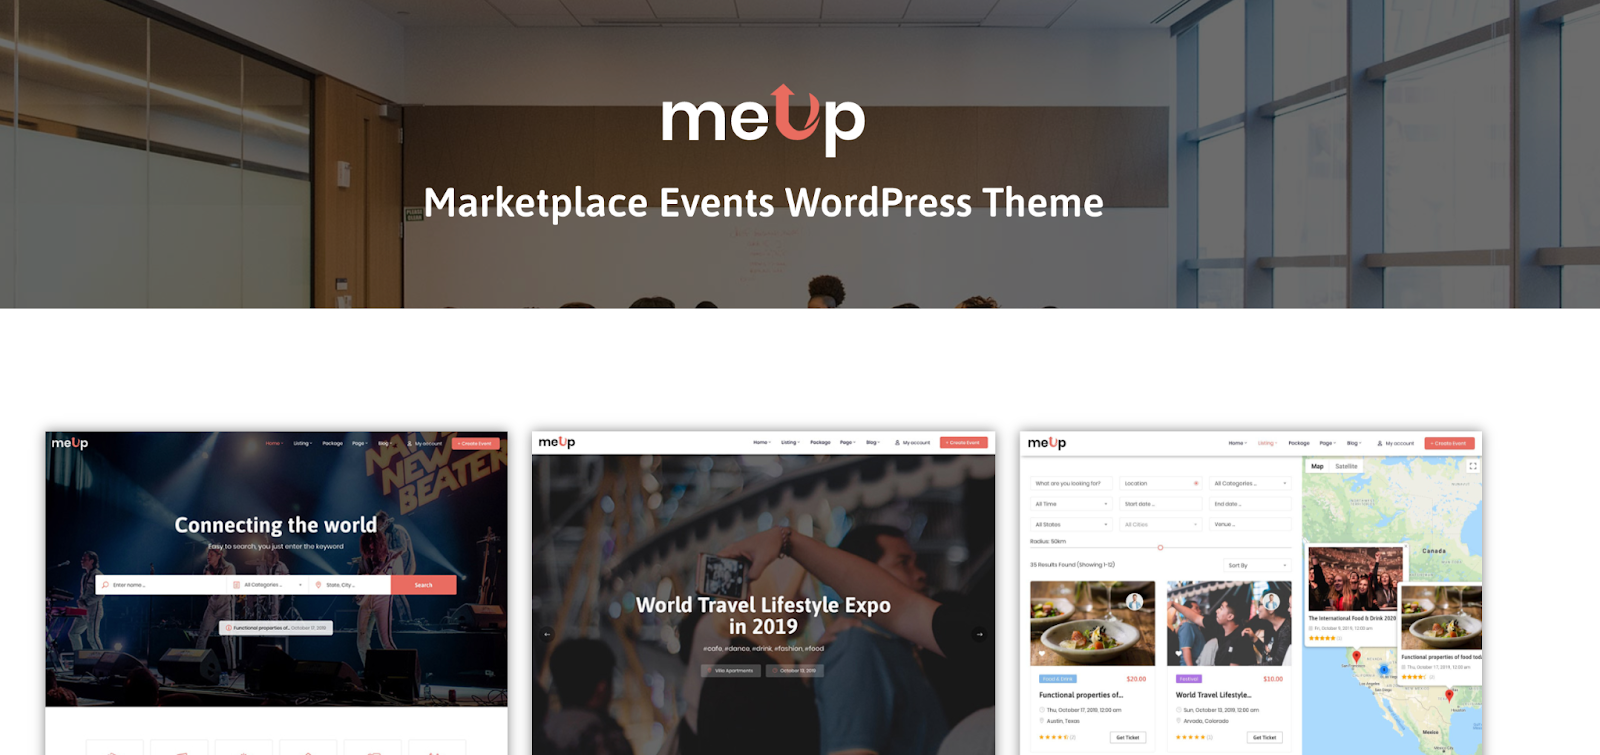 Meup WordPress Marketplace theme homepage featuring the tagline, computer screen, and example of the the theme layout